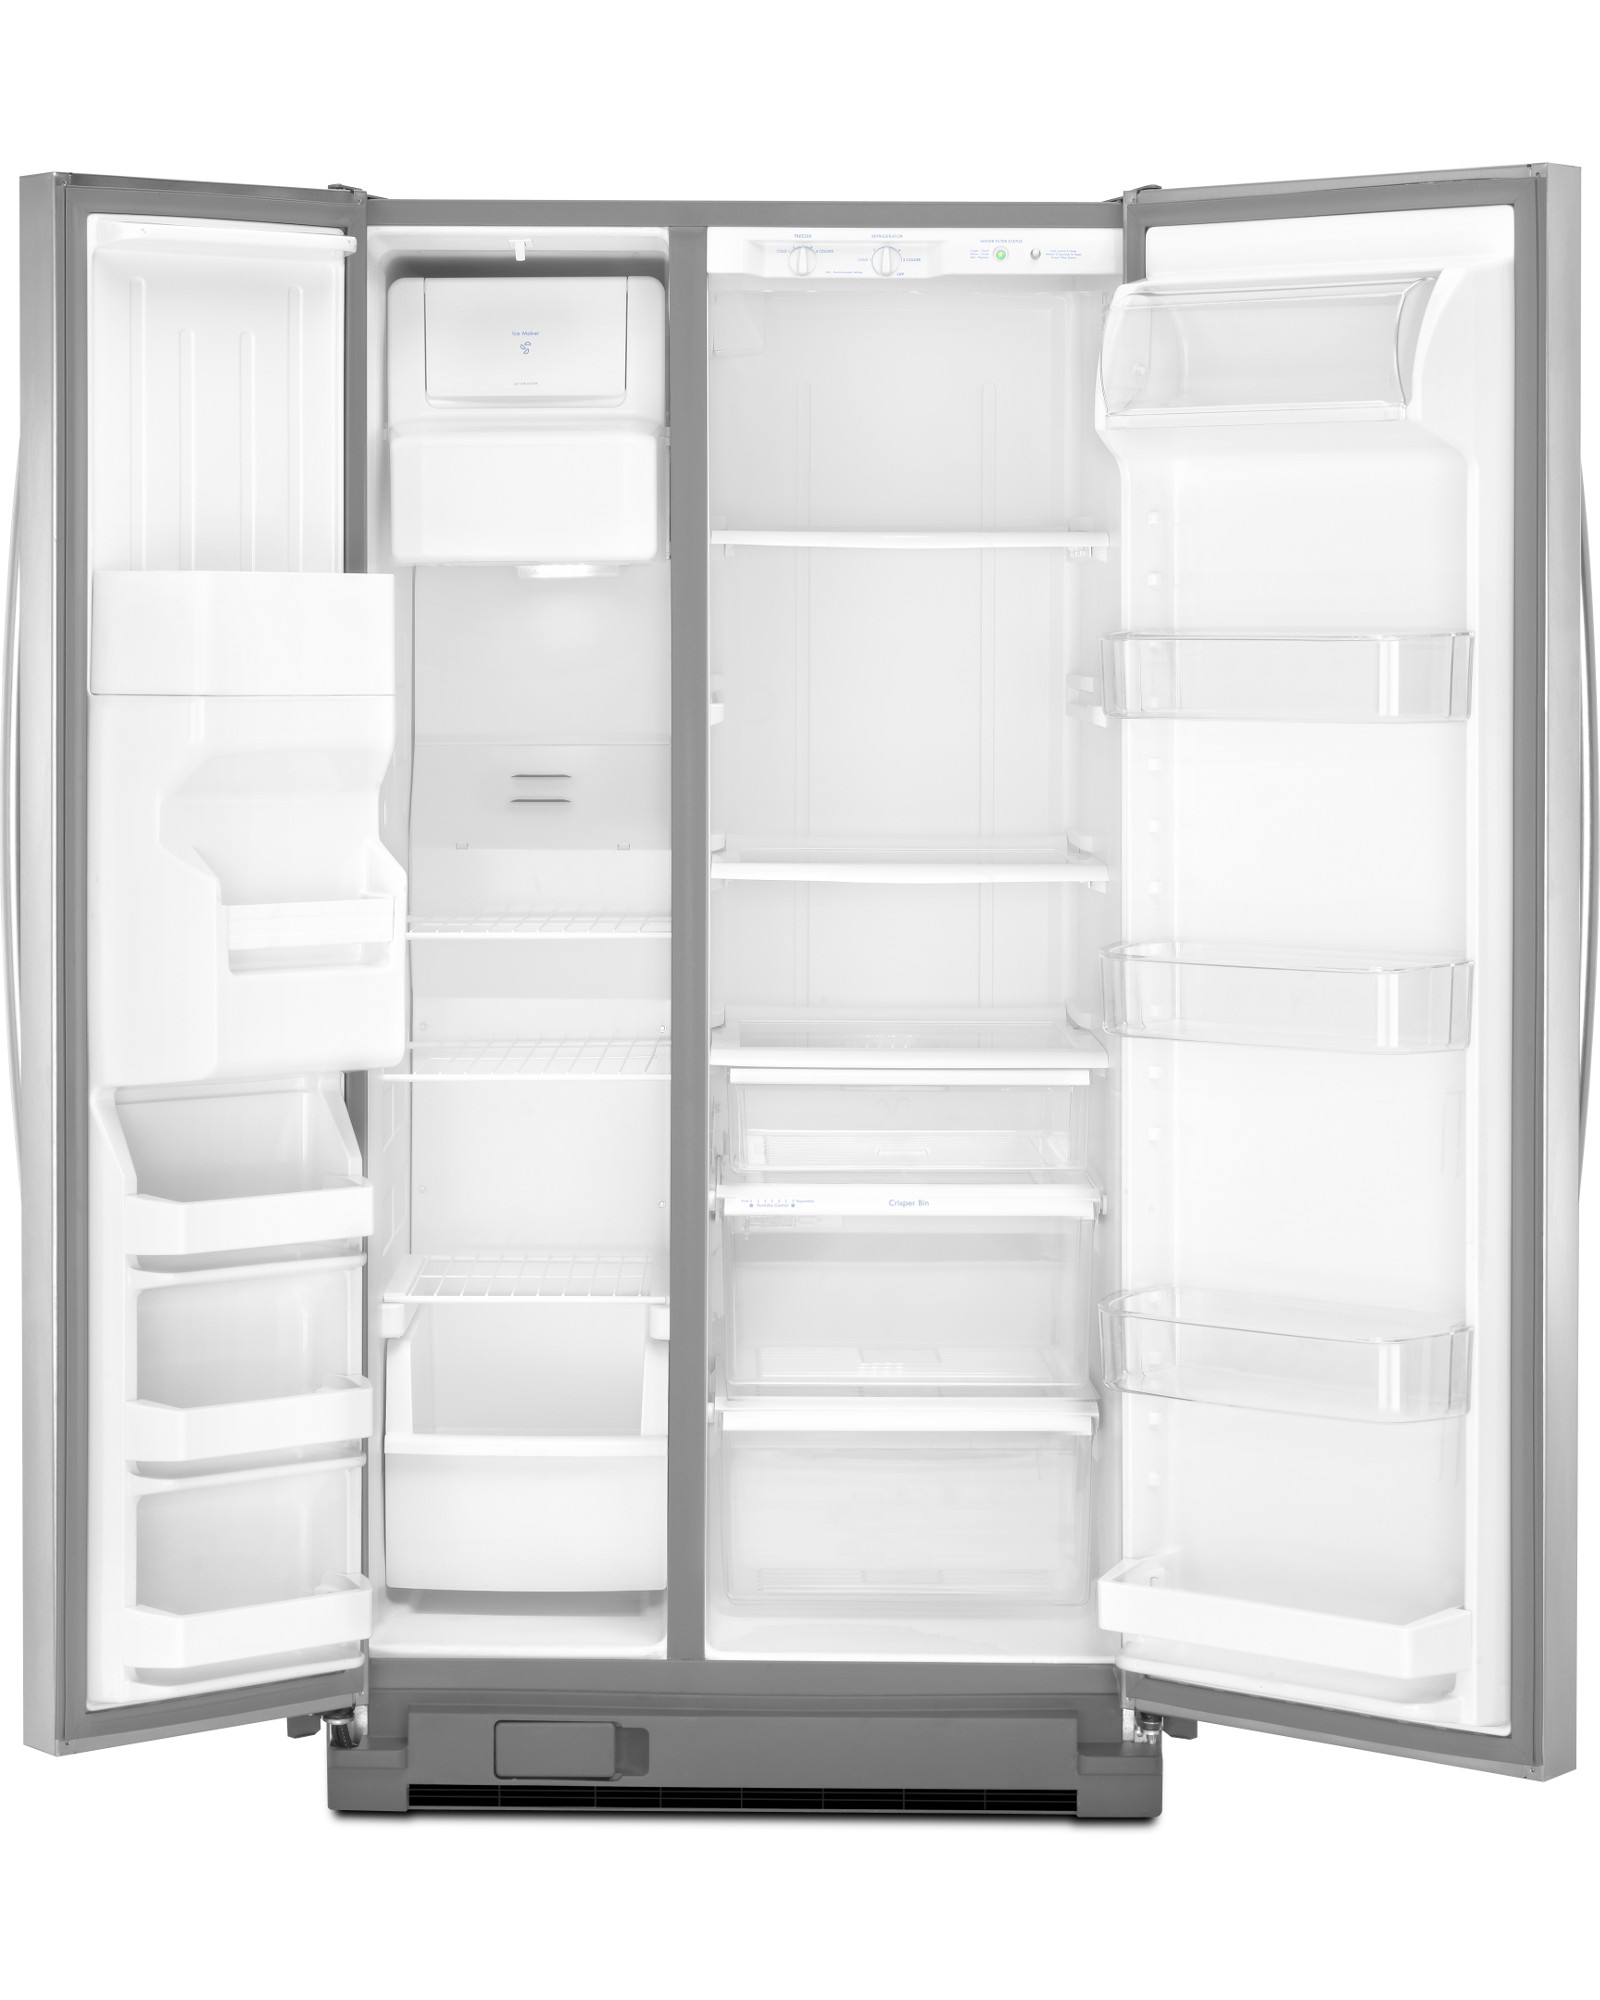 Kenmore 51723 25 cu. ft. Side-by-Side Refrigerator w/ SmartSense™ Cooling Technology - Stainless Steel